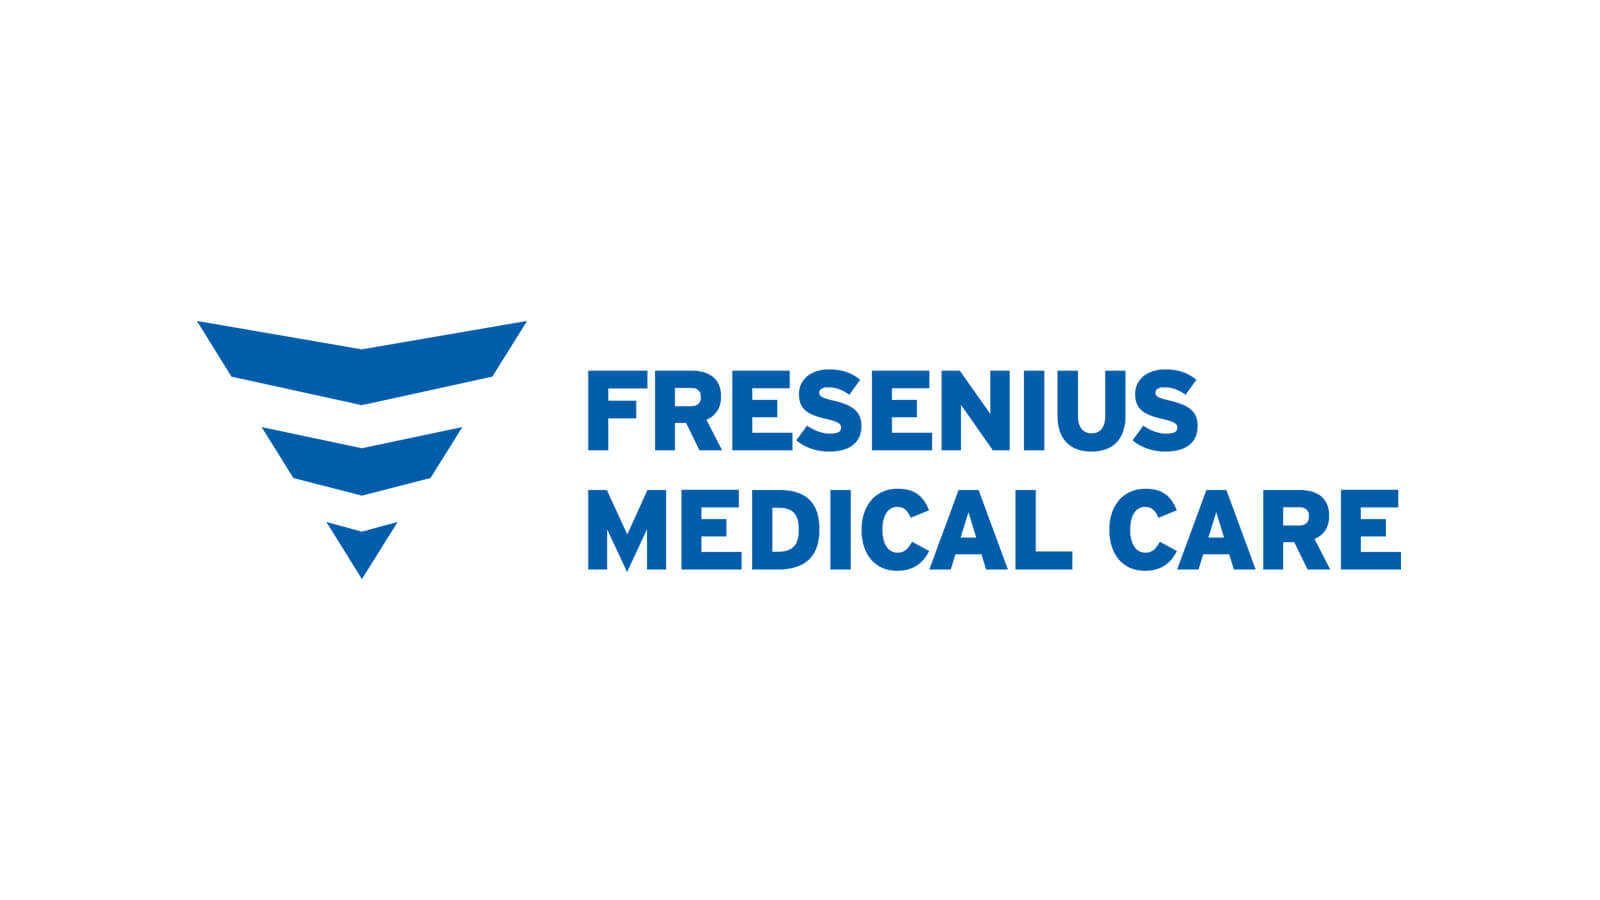 Travel Dialysis Registered Nurse - Pottsville PA at FRESENIUS